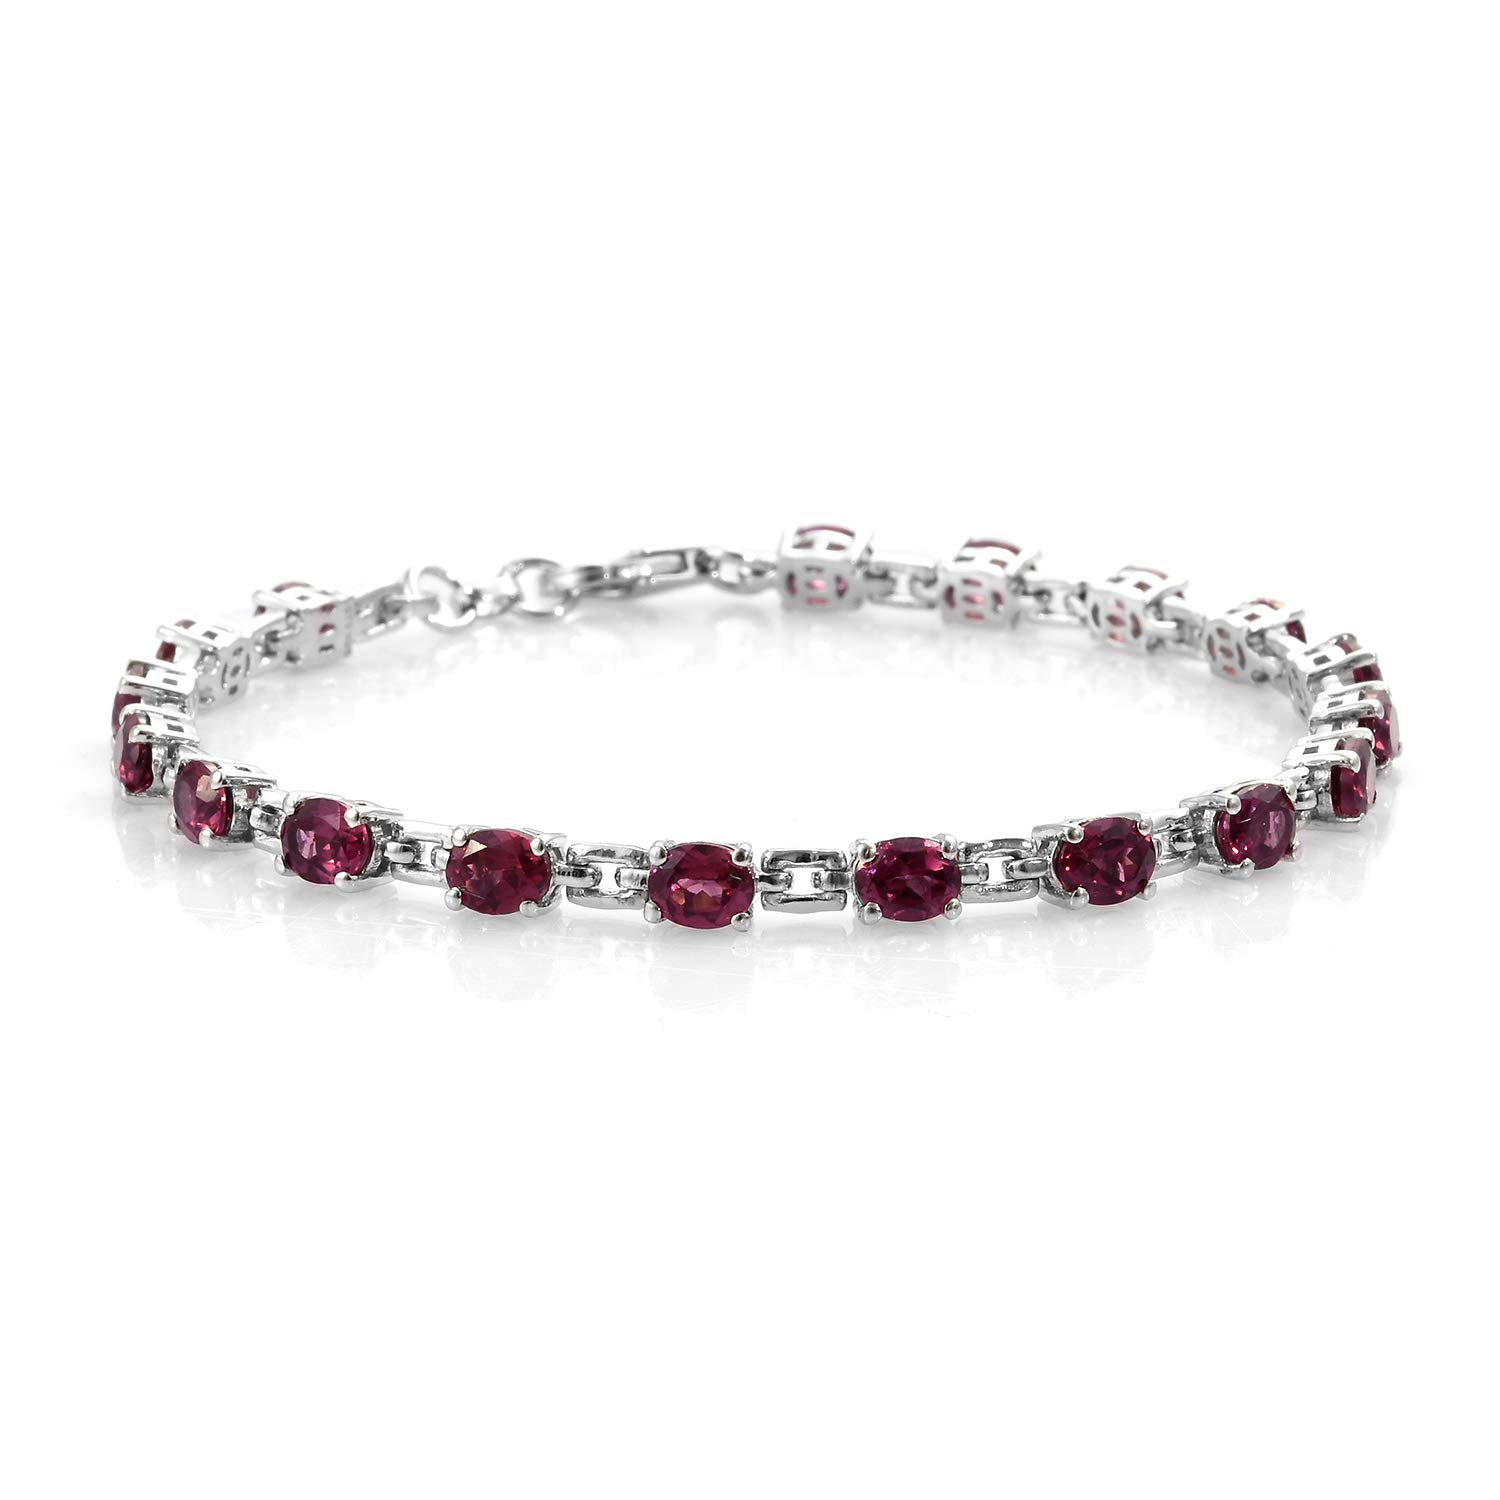 Bracelet 925 Sterling Silver Platinum Plated Oval Garnet Gift Jewelry for Women Size 7.25'' Ct 6.8